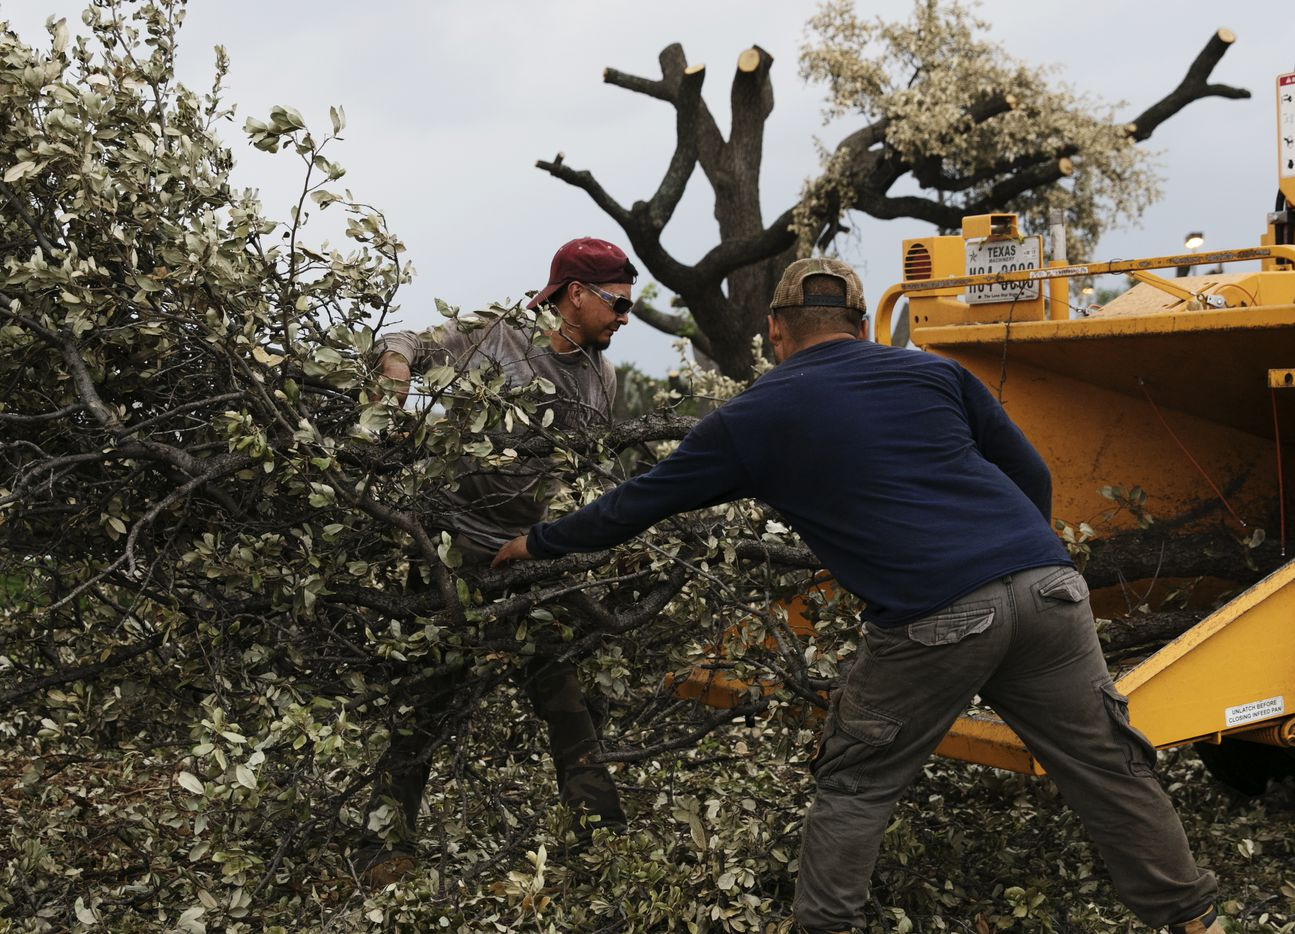 Two men work to remove the oak trees that line Forest Lane on Friday June 2, 2017. (Tailyr Irvine/The Dallas Morning News)